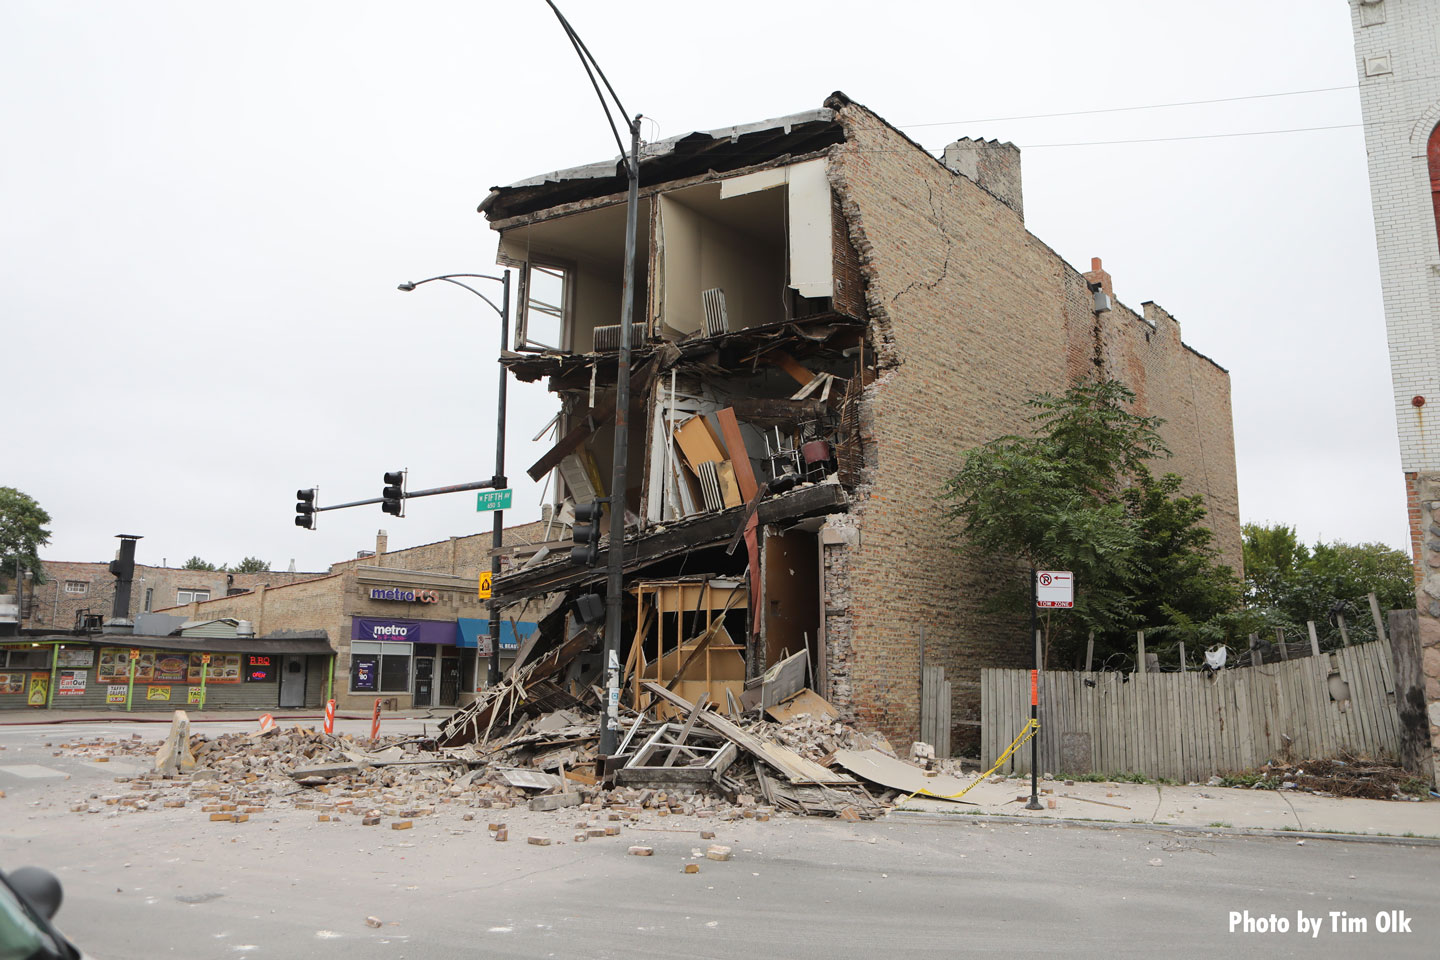 Another view of the collapsed structure.